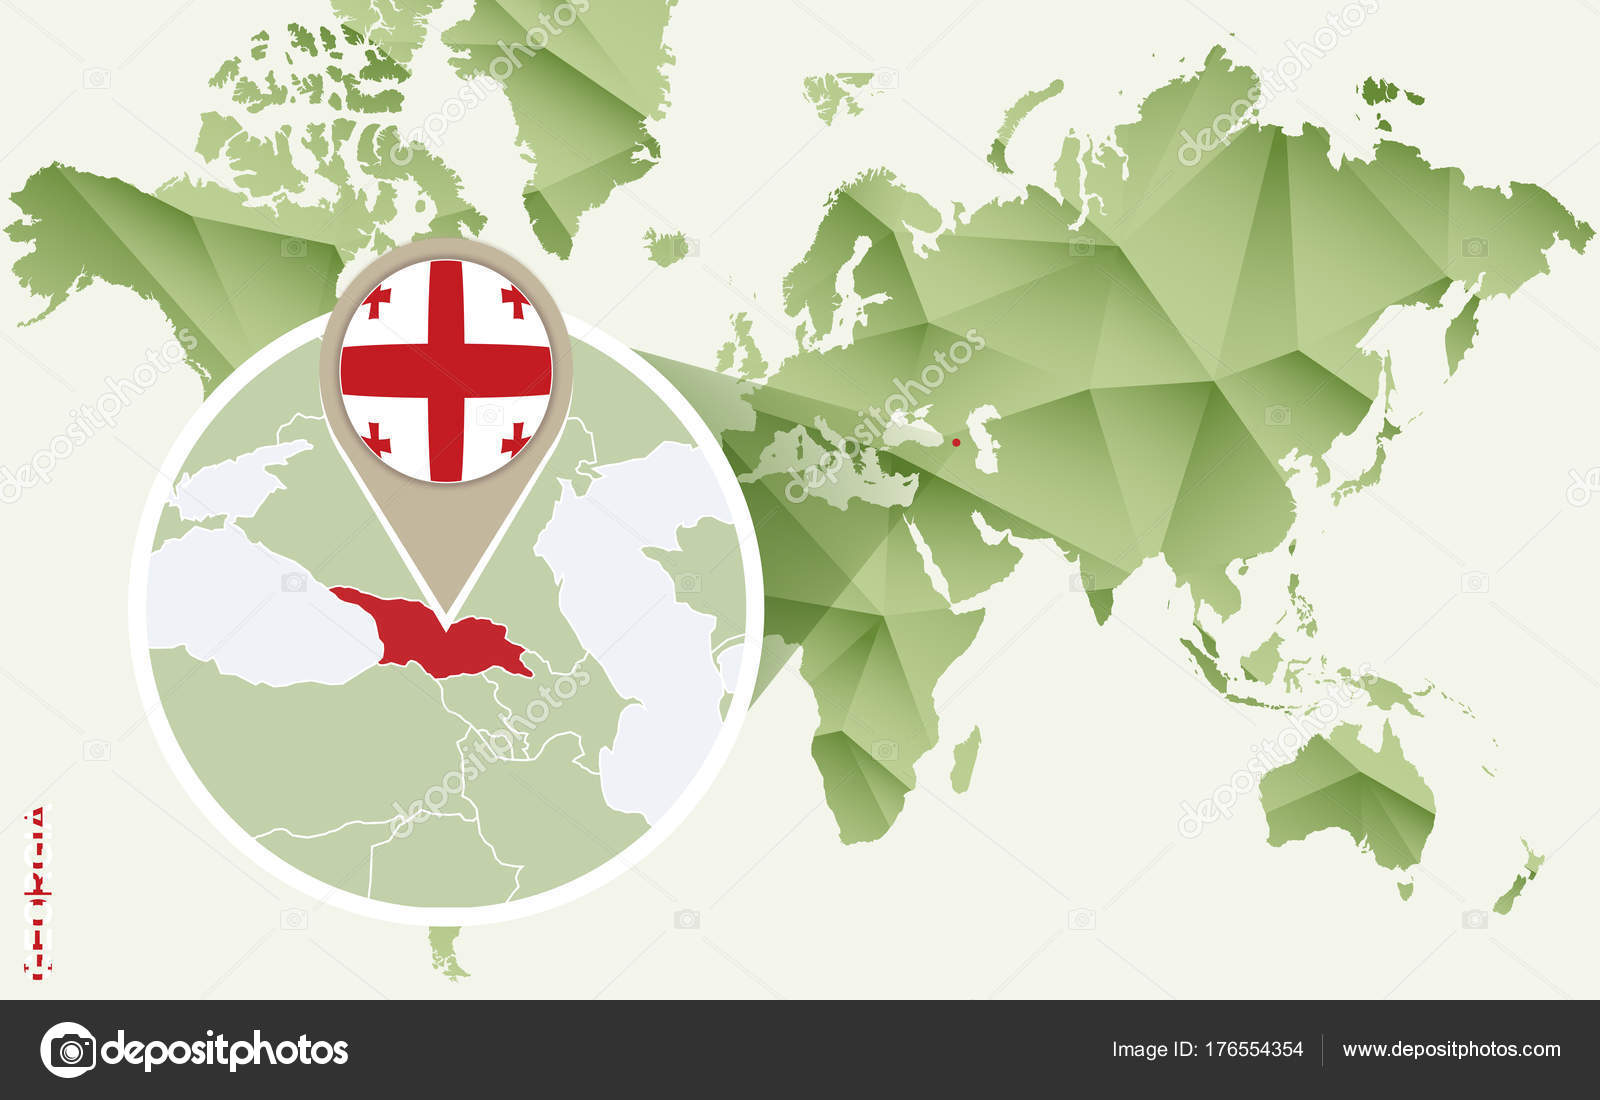 Infographic for Georgia, detailed map of Georgia with flag. — Stock on